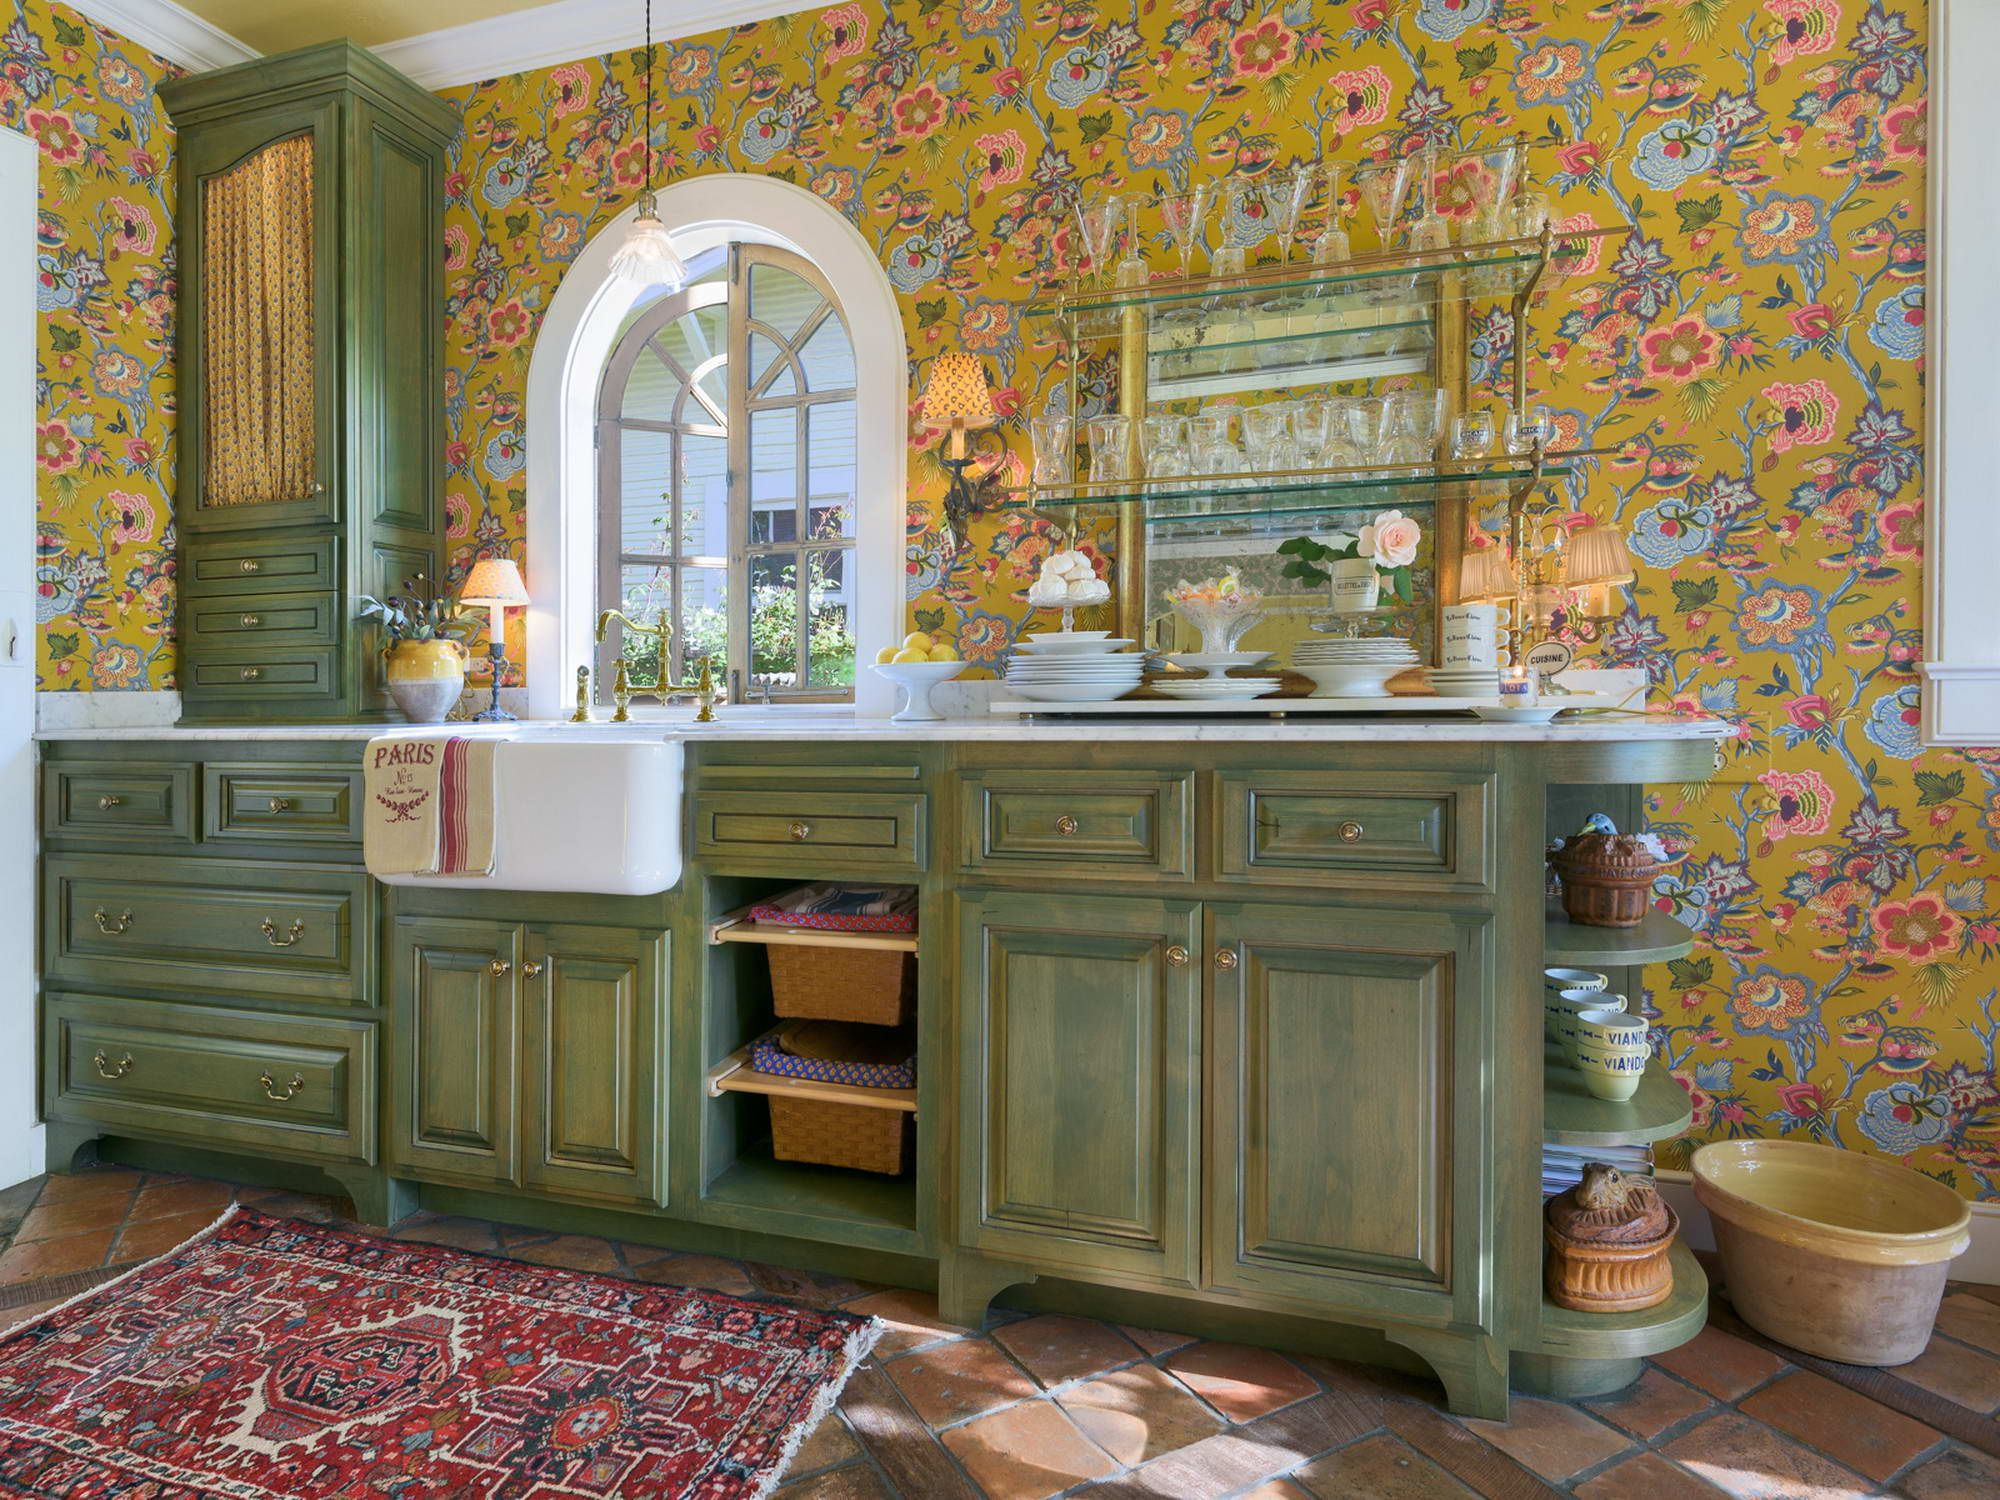 California kitchen remodel with upscale cabinetry and french california kitchen remodel with upscale cabinetry and french appliances including our reclaimed french terracotta floor and dailygadgetfo Choice Image